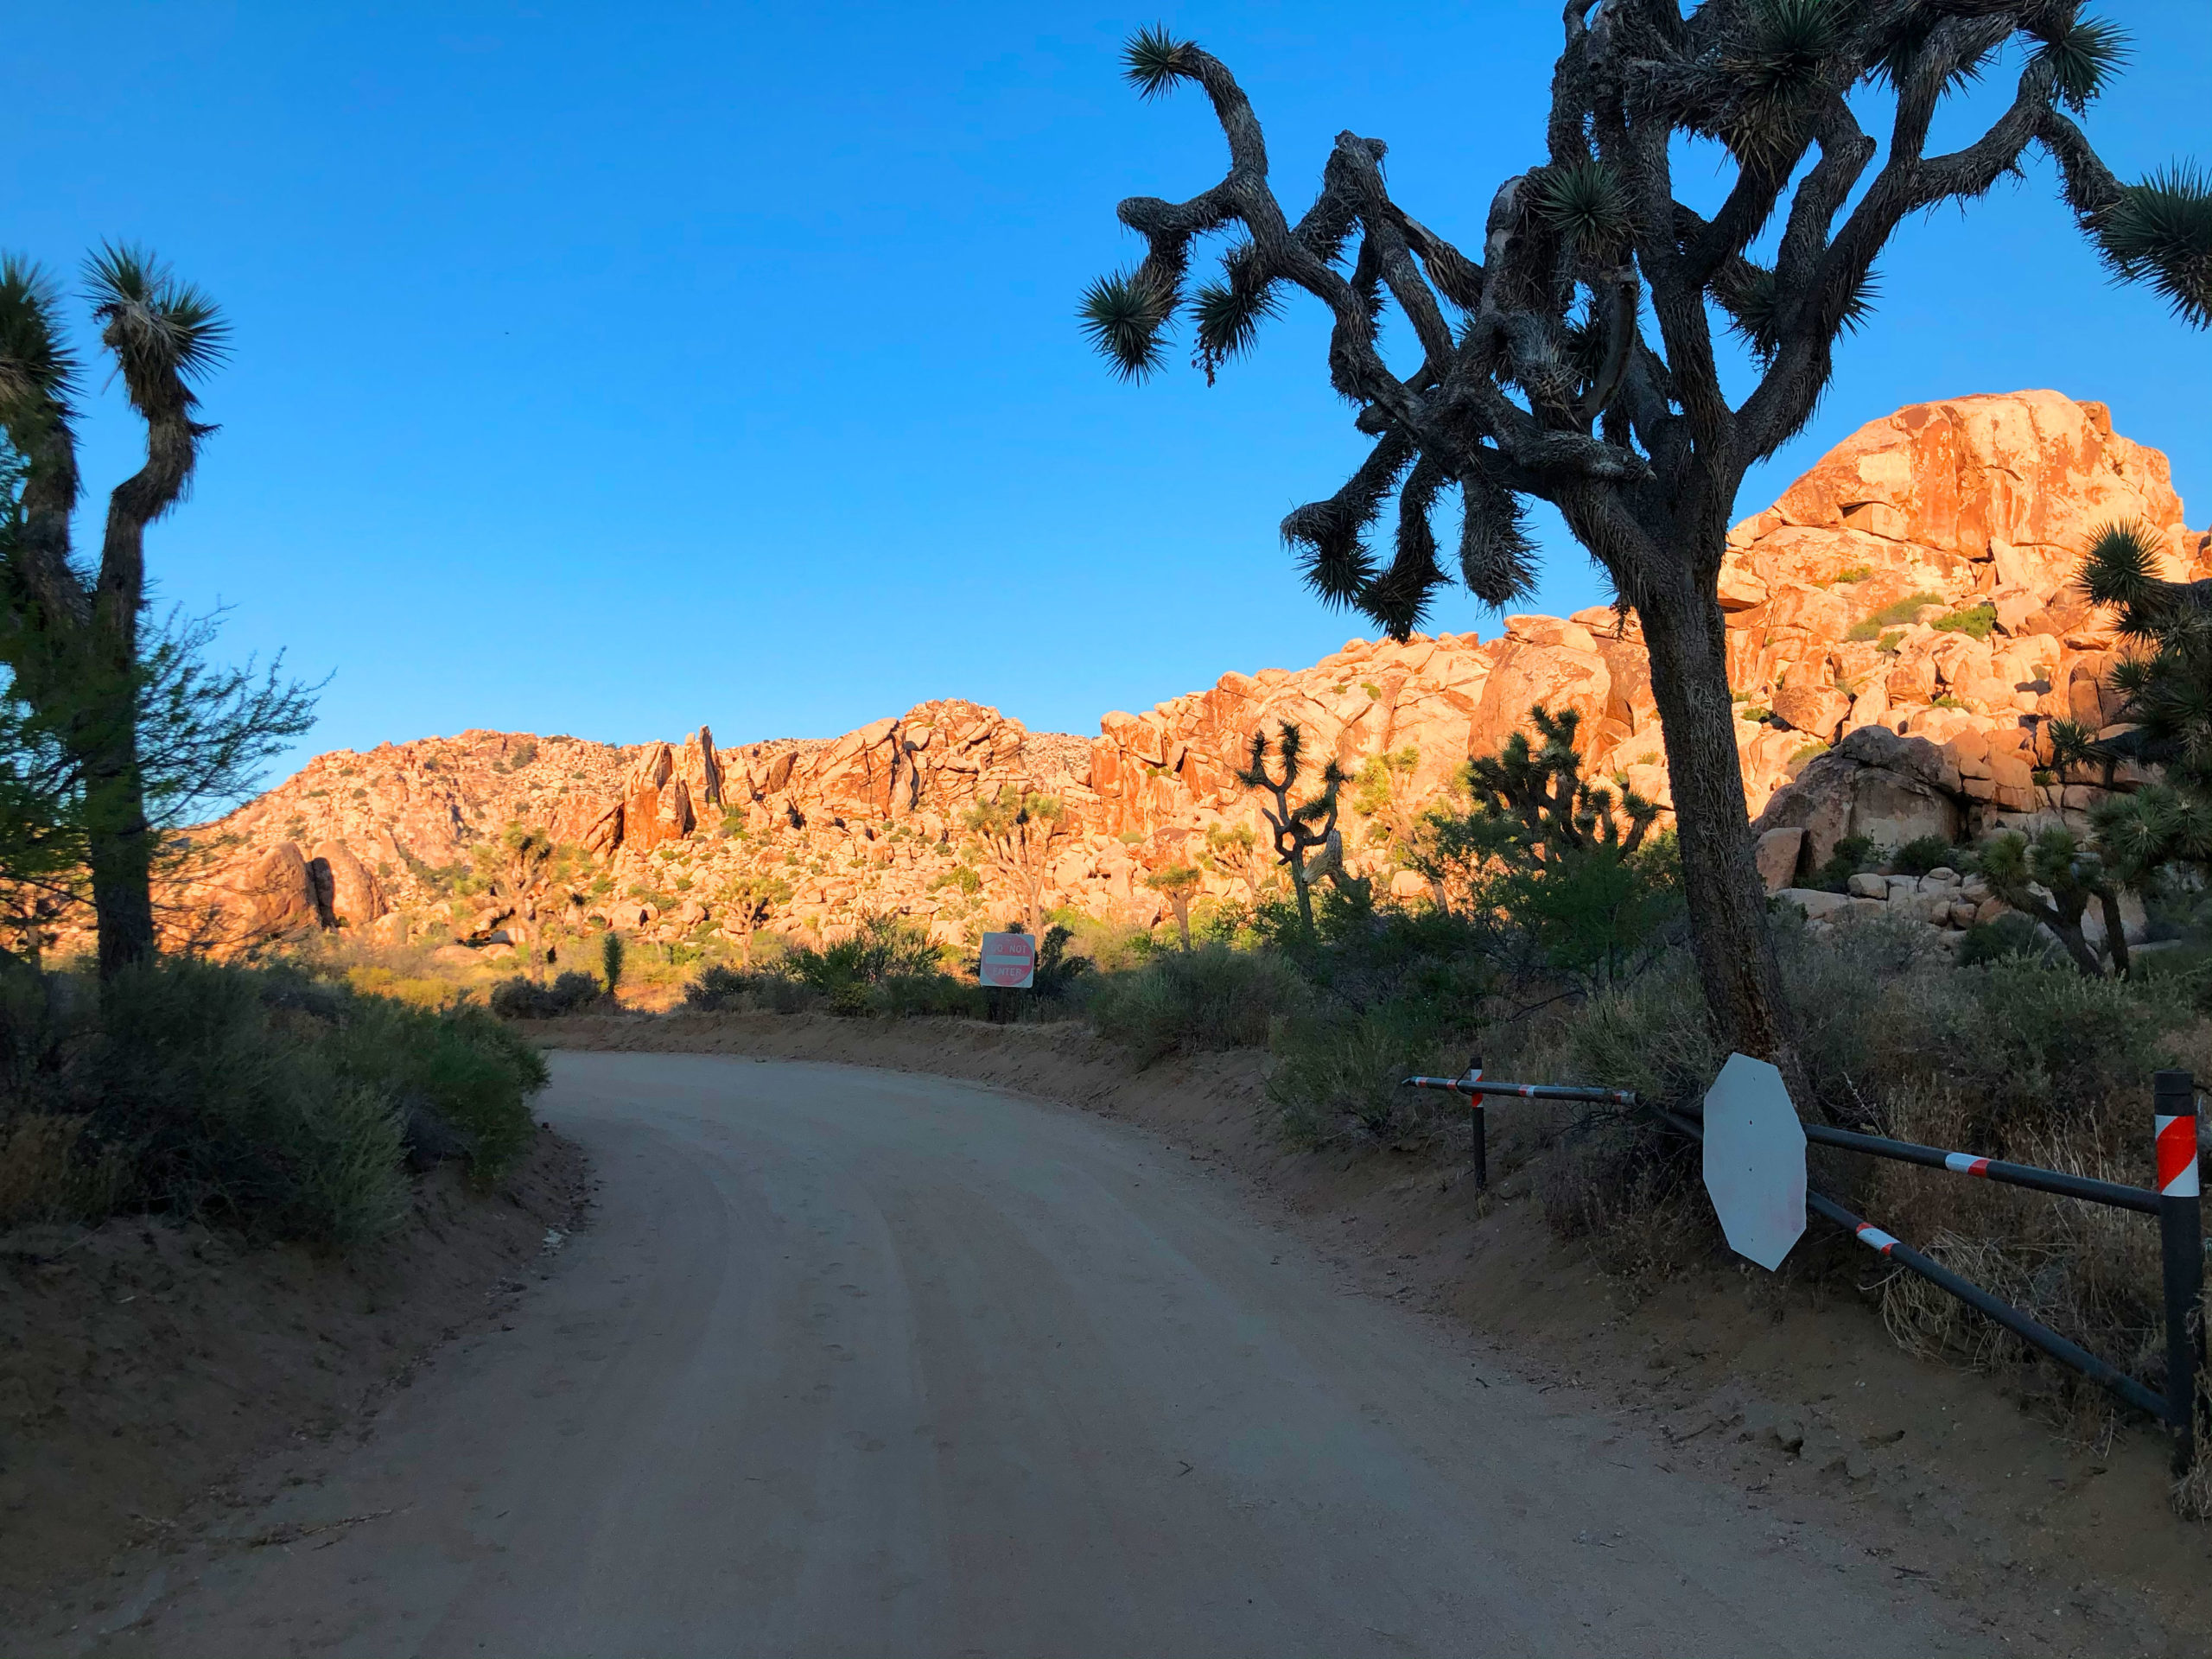 joshua-tree-national-park-climbing-camping-hiking-adventure-tour-lost-horse-ranger-station-locked-gate-ahead-2